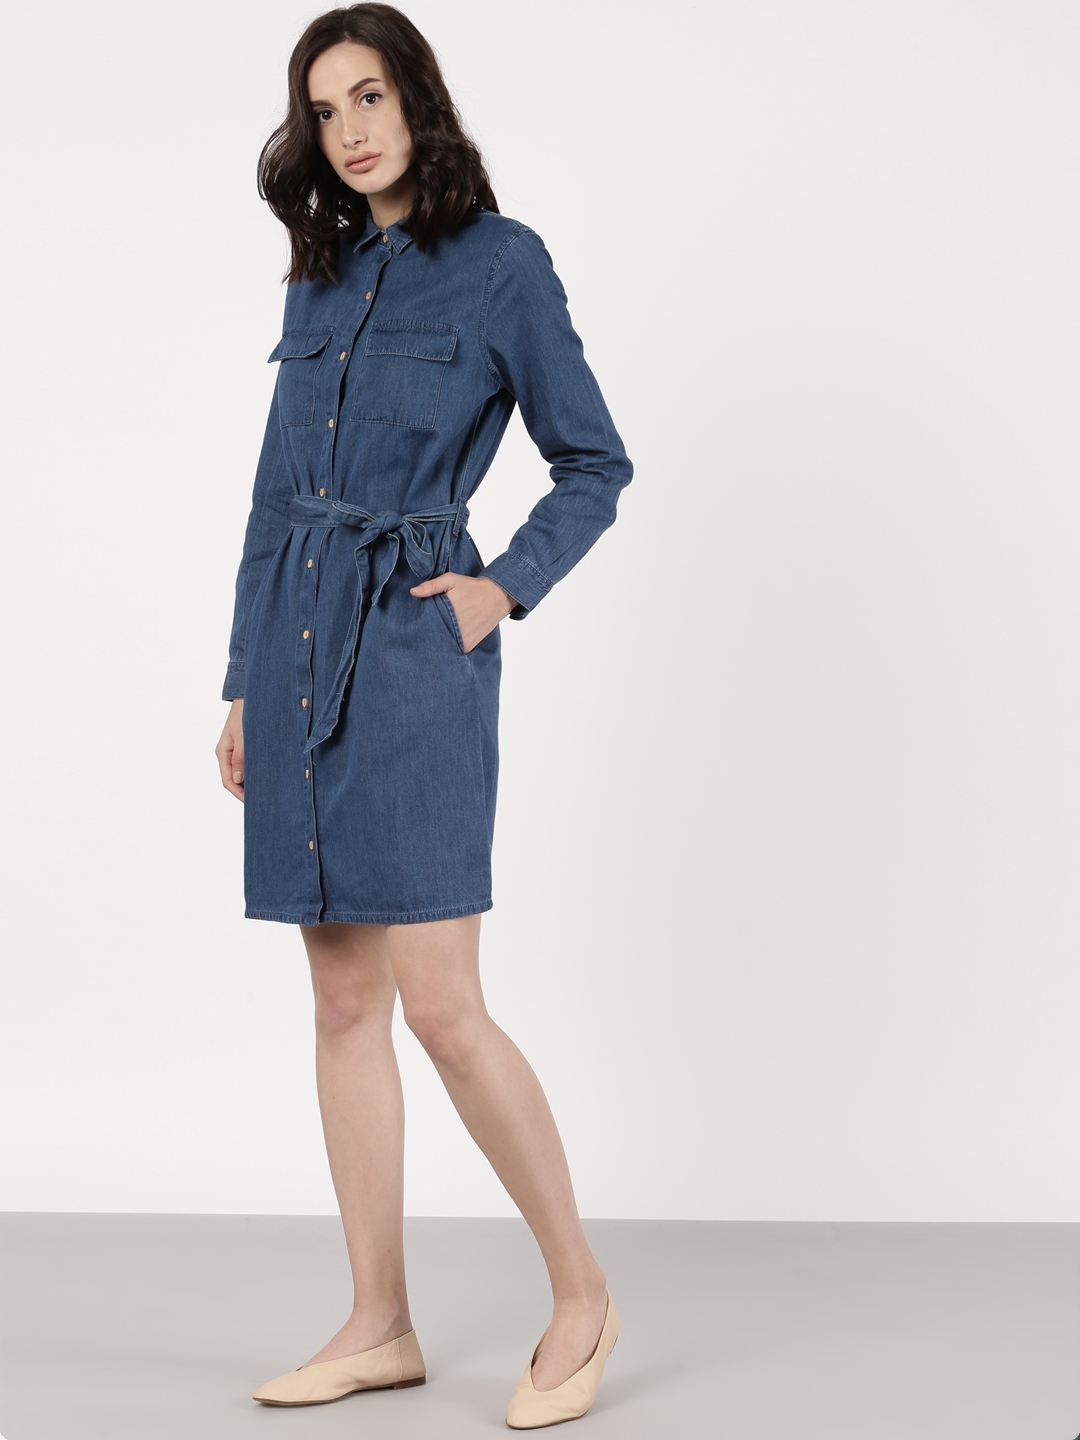 570cfb02eea Denim Shirt Dress With Pockets - Ortsplanungsrevision Stadt Thun